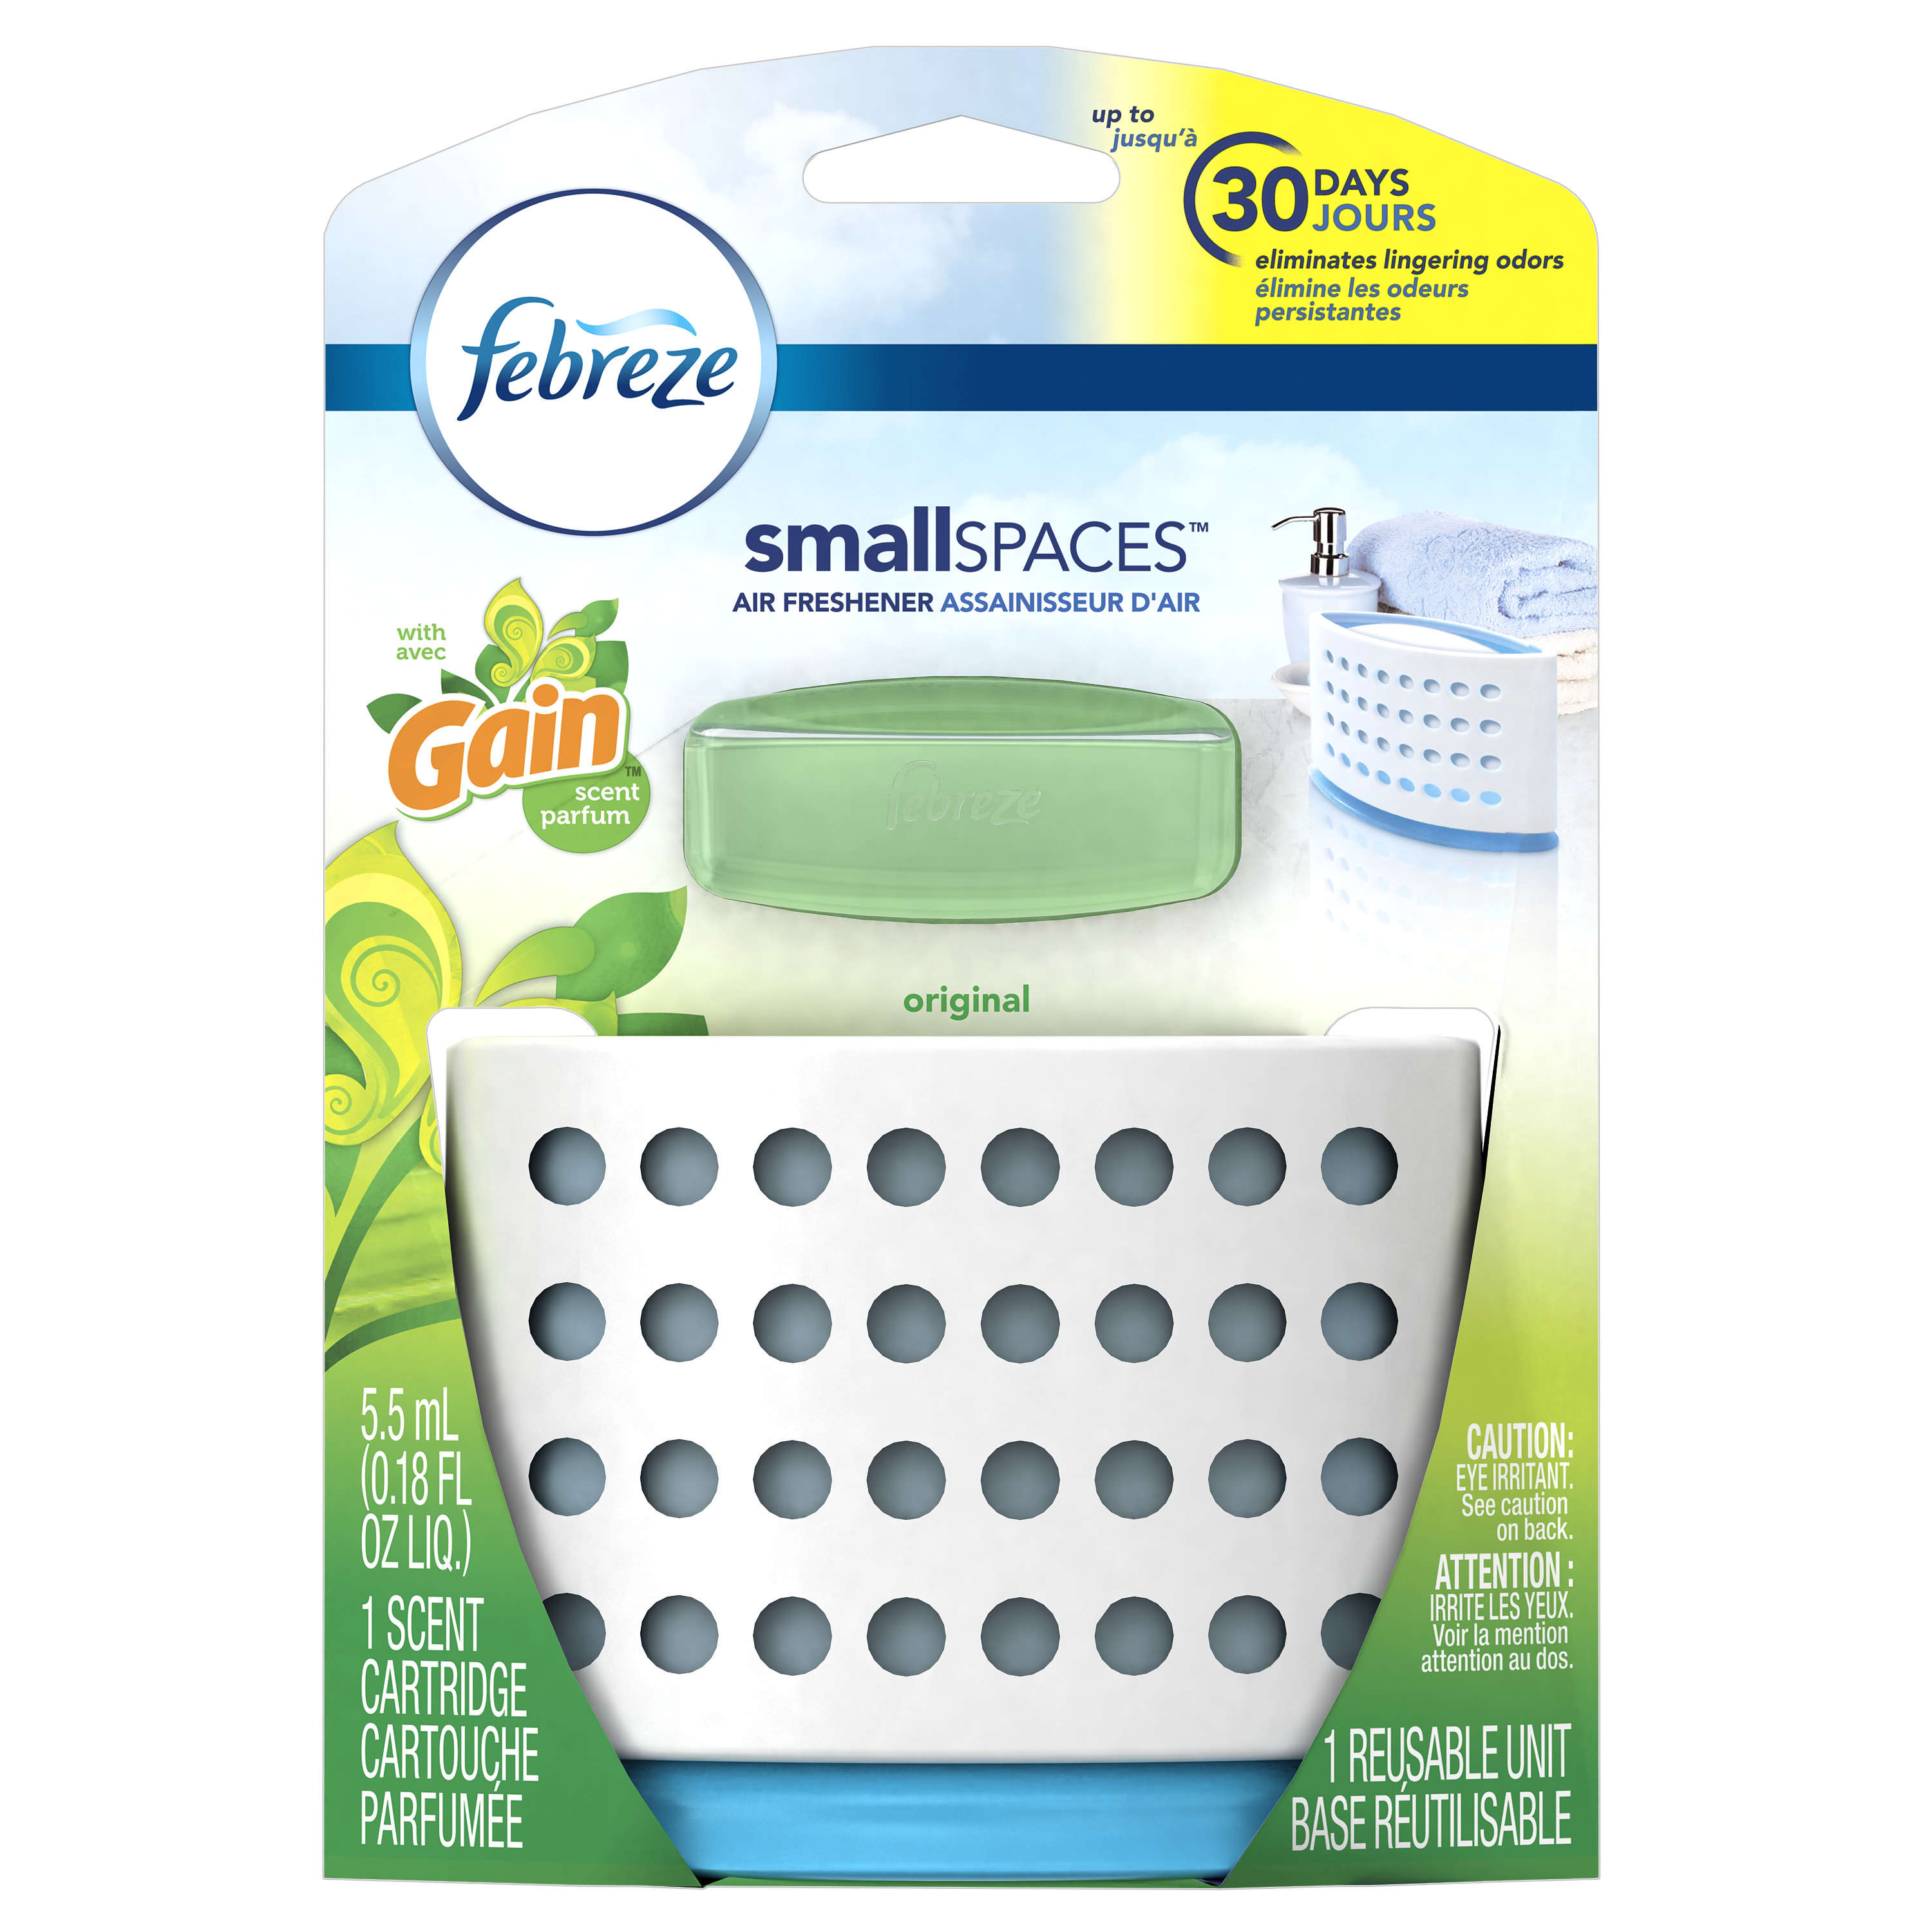 Febreze Small Spaces Air Freshener Starter Kit, Gain Original Scent, 1 Count